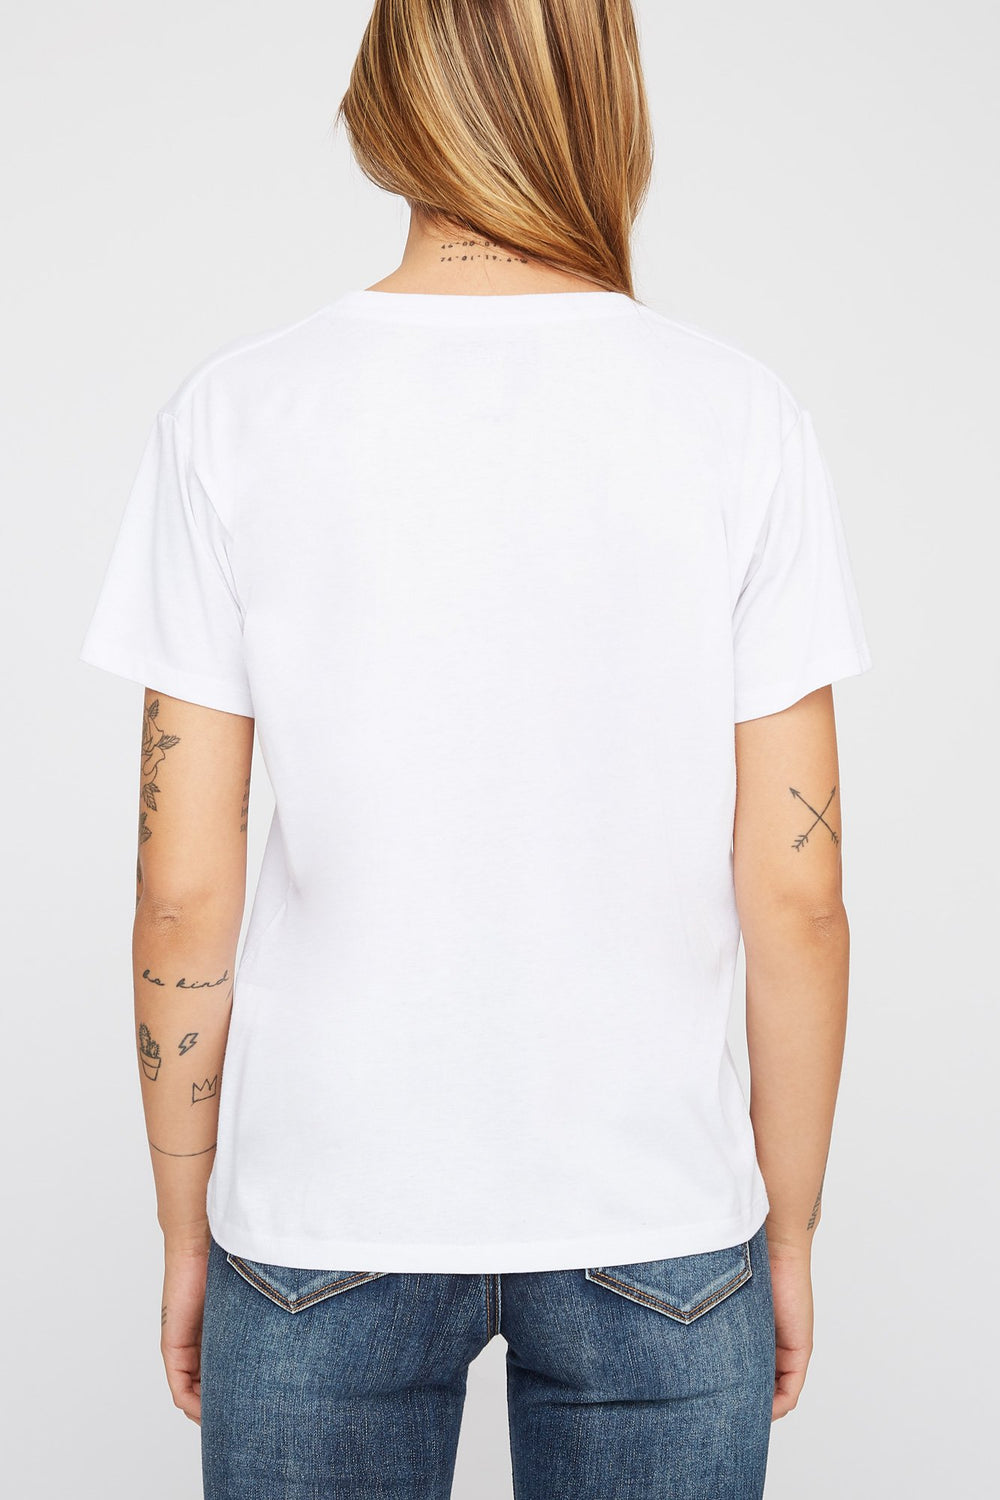 Zoo York Womens Printed Floral Logo T-Shirt White